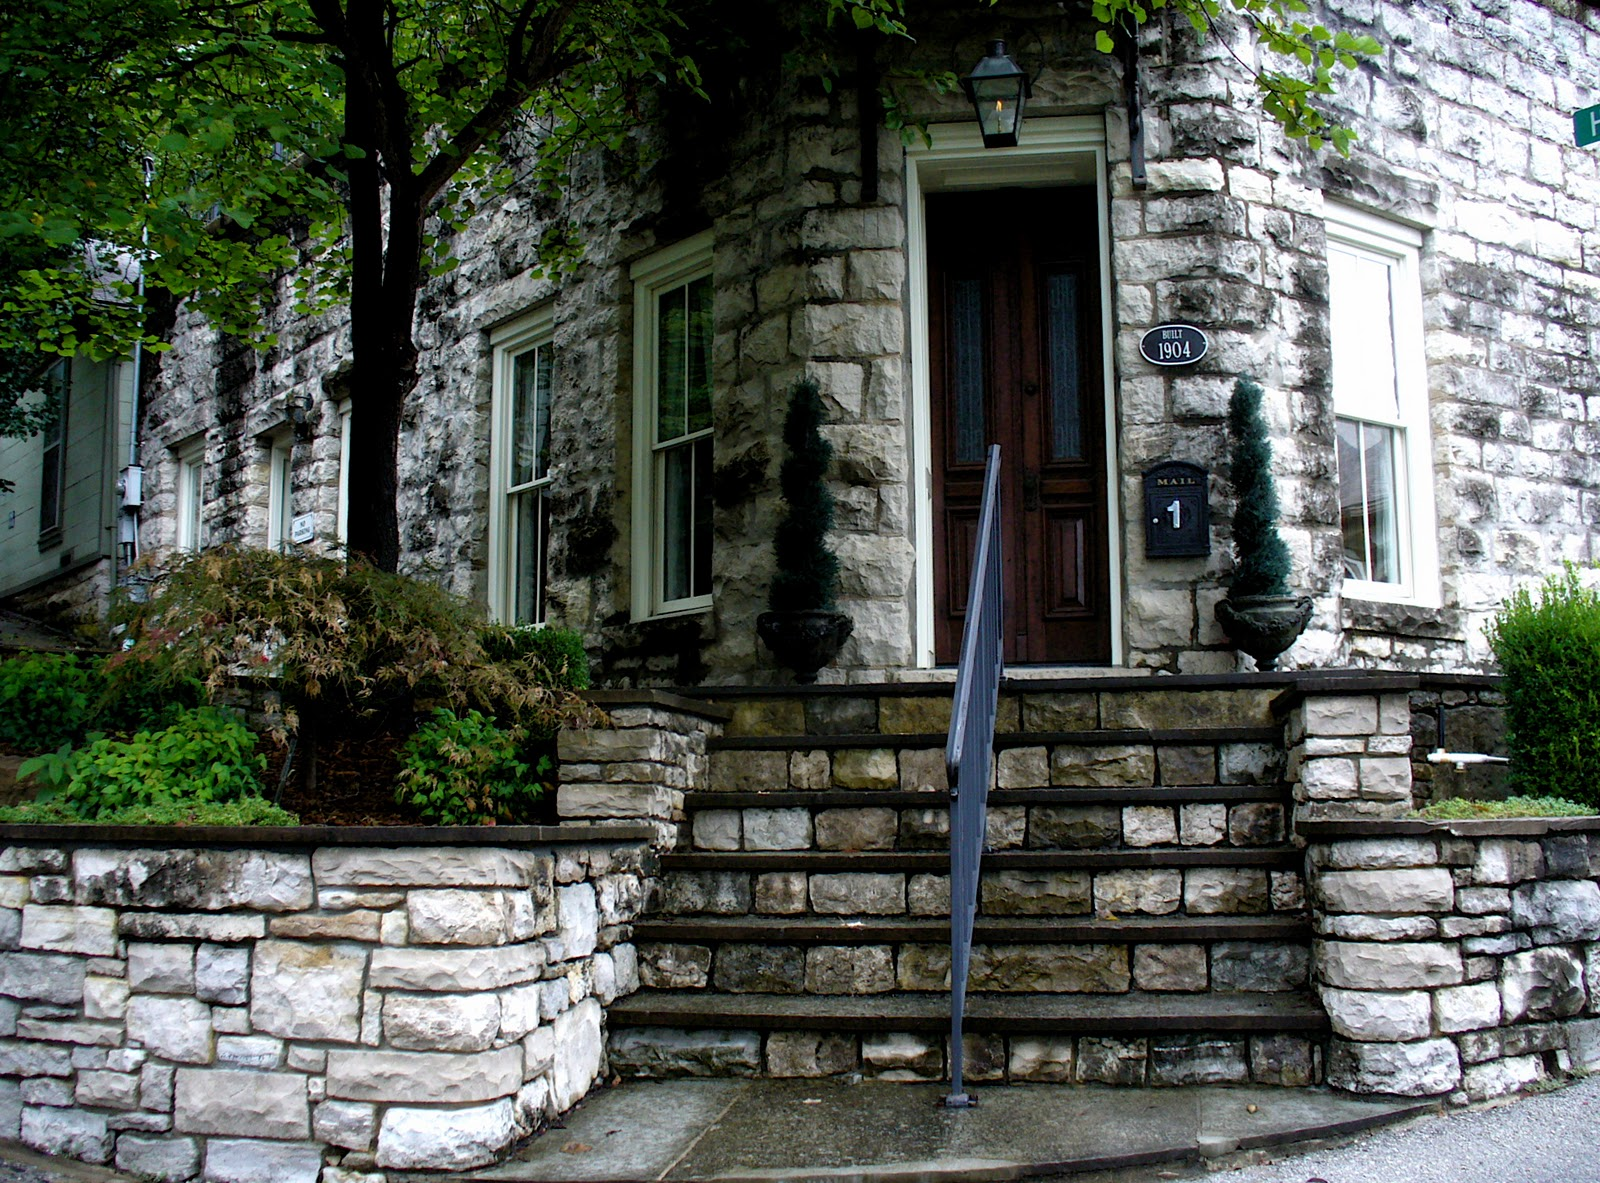 Stone Steps In Eureka Springs Ark. & Alt. Build Blog: Stone Steps In Eureka Springs Ark.